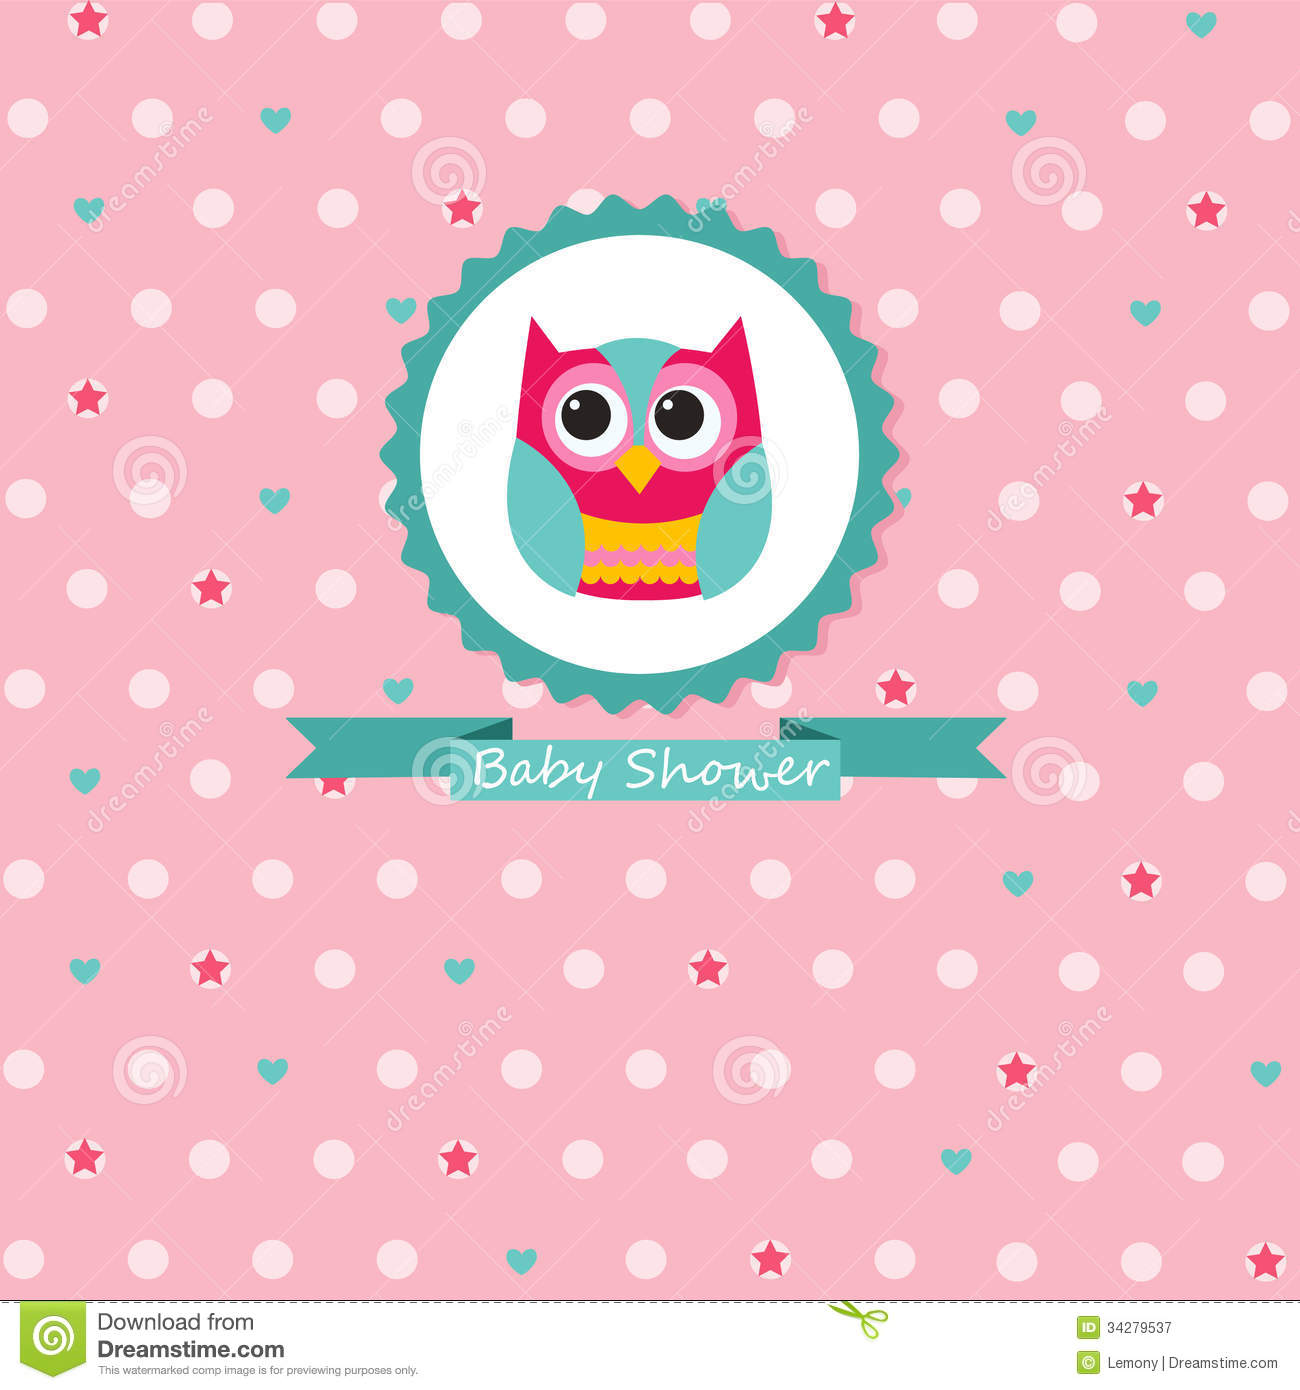 Owl Baby Invitations is great invitations ideas